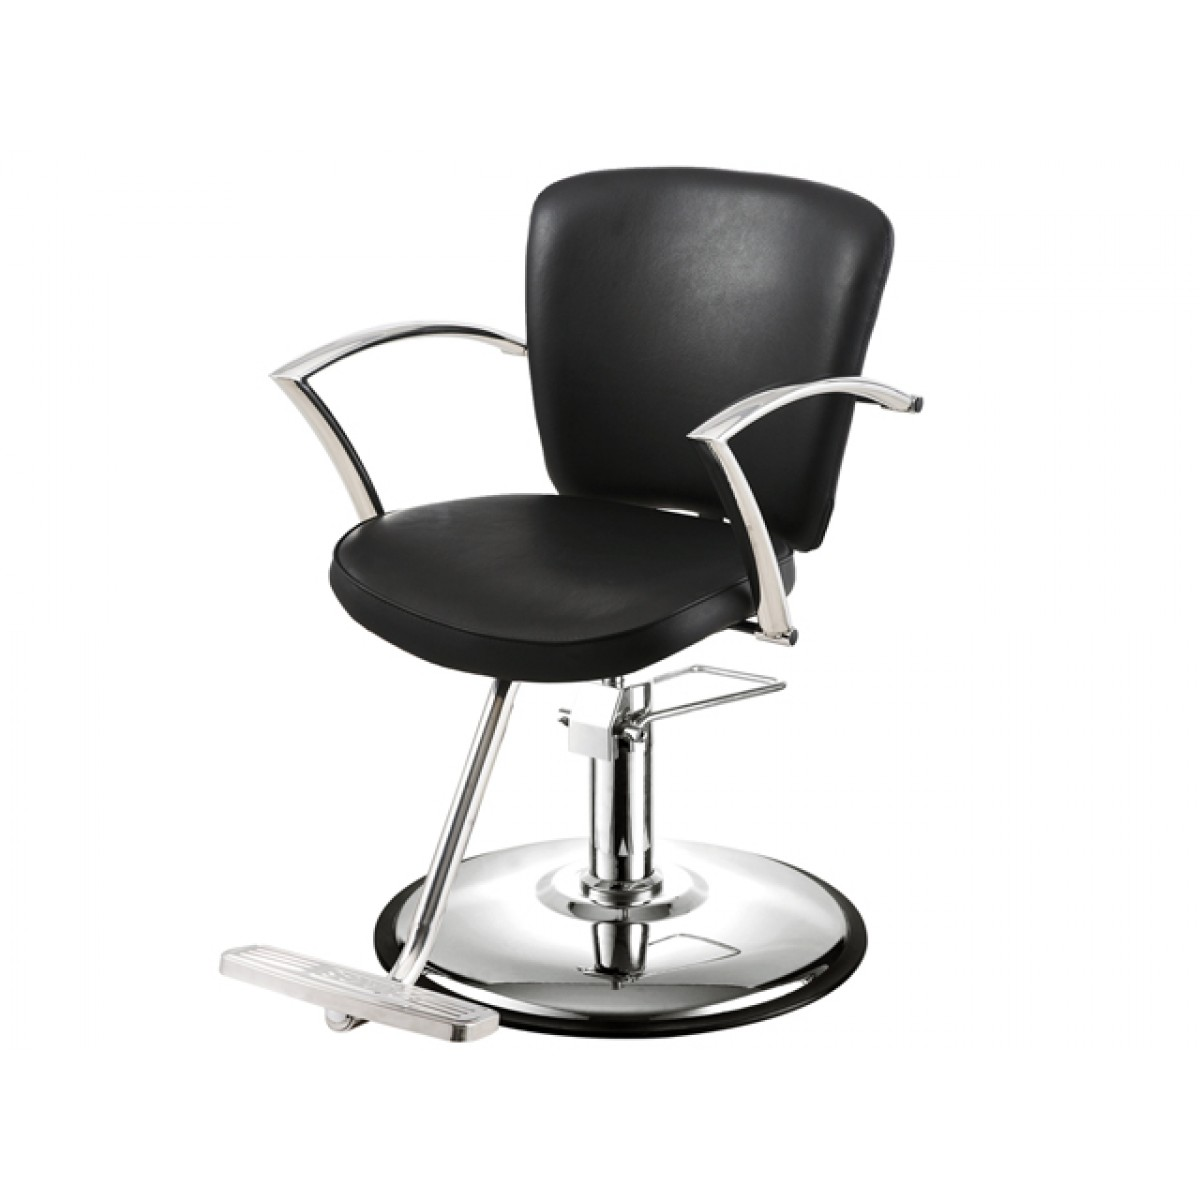 Salon Equipment New York City, Salon Furniture New York City, Salon Chairs NYC